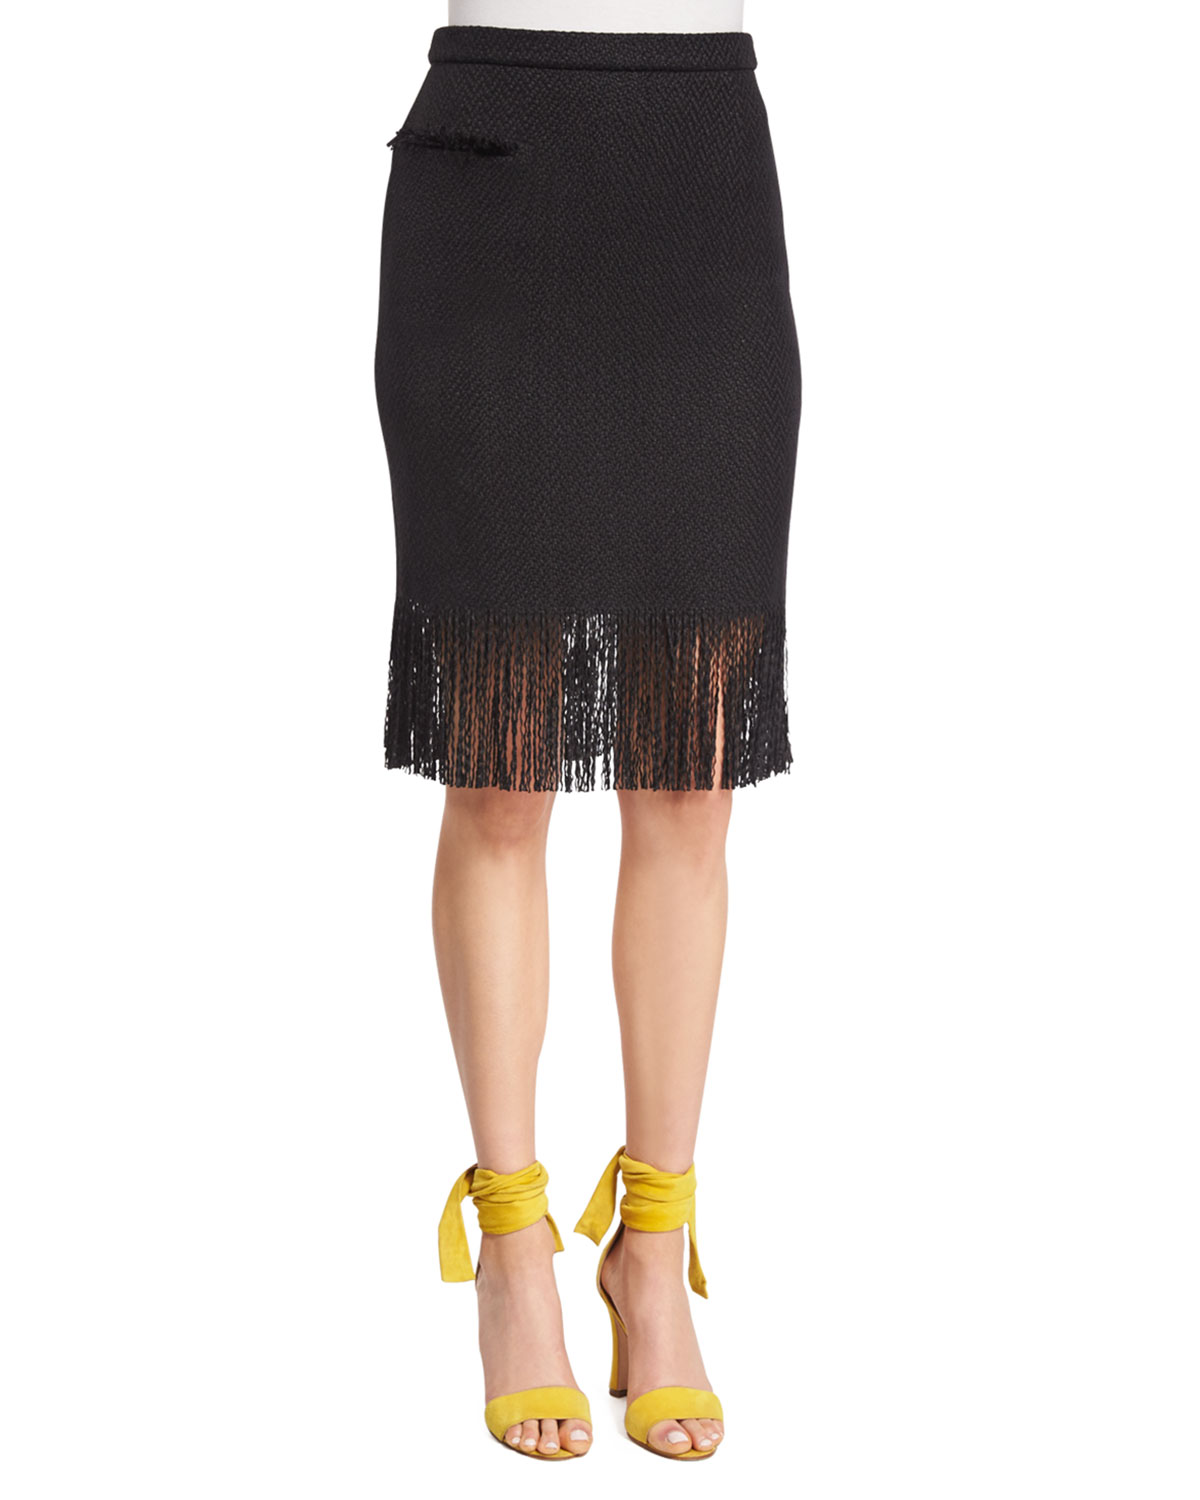 Pencil Skirt W/Fringe Hem, Black, Size: 0 - Adam Lippes